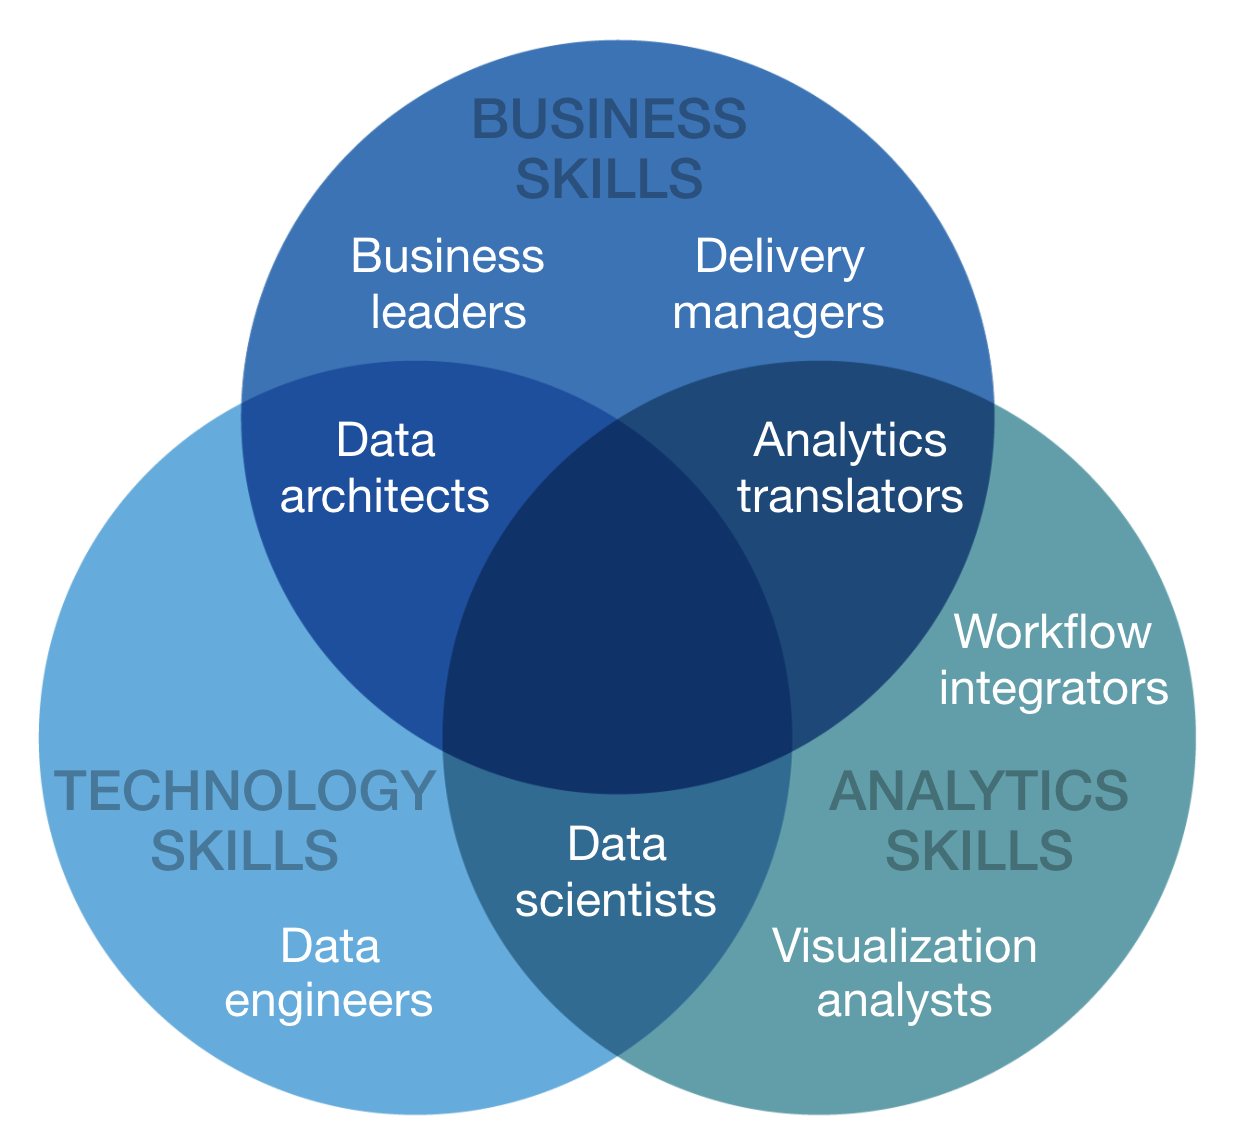 FIGURE 5  :  ORGANISATIONS NEED A VARIETY OF ANALYTICS TALENT WITH WELL-DEFINED ROLES (CLICK ON THE IMAGE TO ACCESS THE ARTICLE/INFOGRAPHIC WHERE YOU CAN CLICK ON EACH ROLE TO SEE ITS RESPONSIBILITIES)